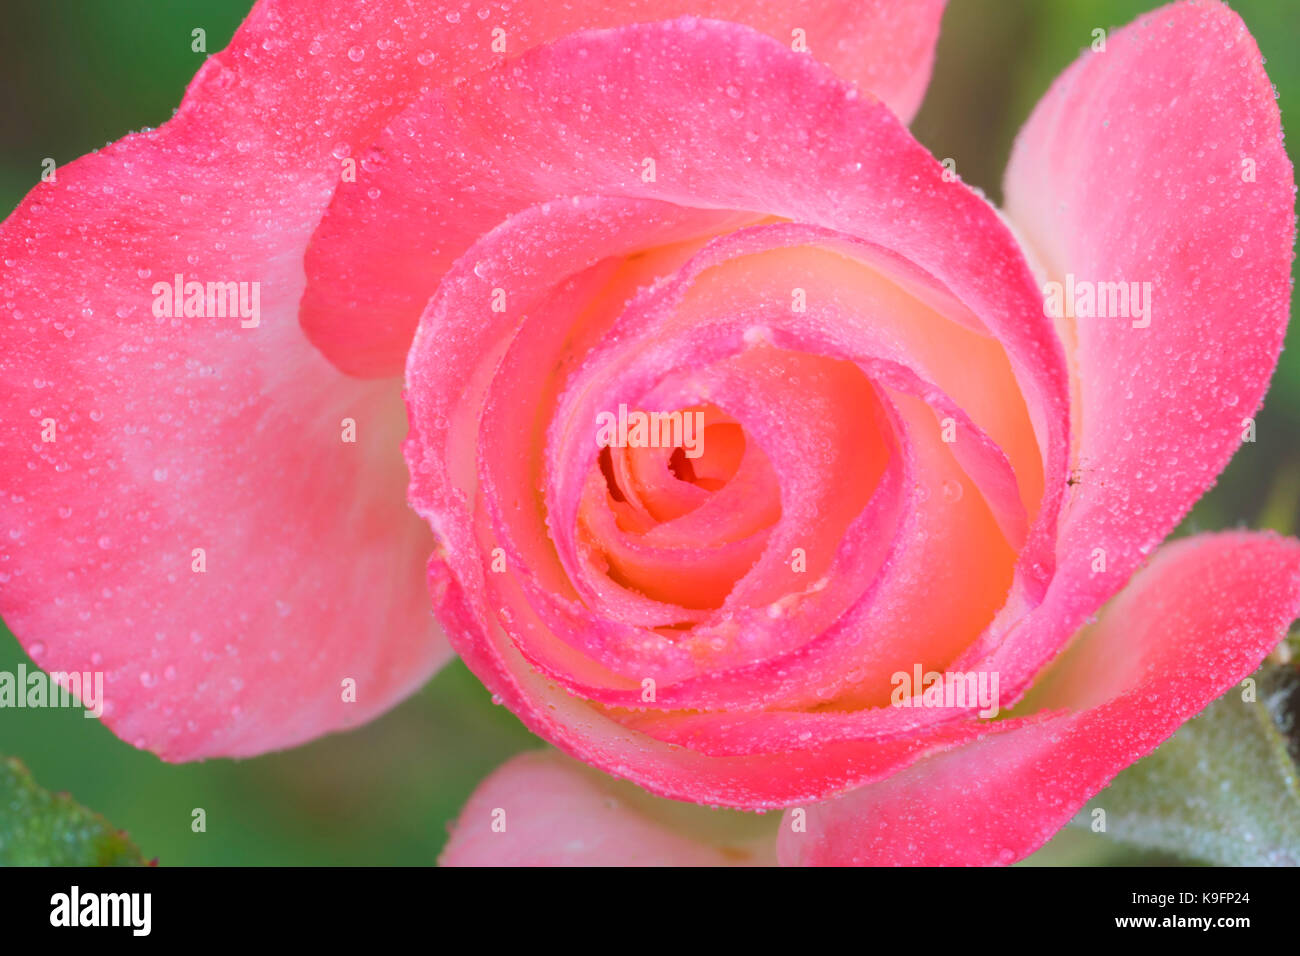 Rose, Bushs Pasture Park, Salem, Oregon - Stock Image